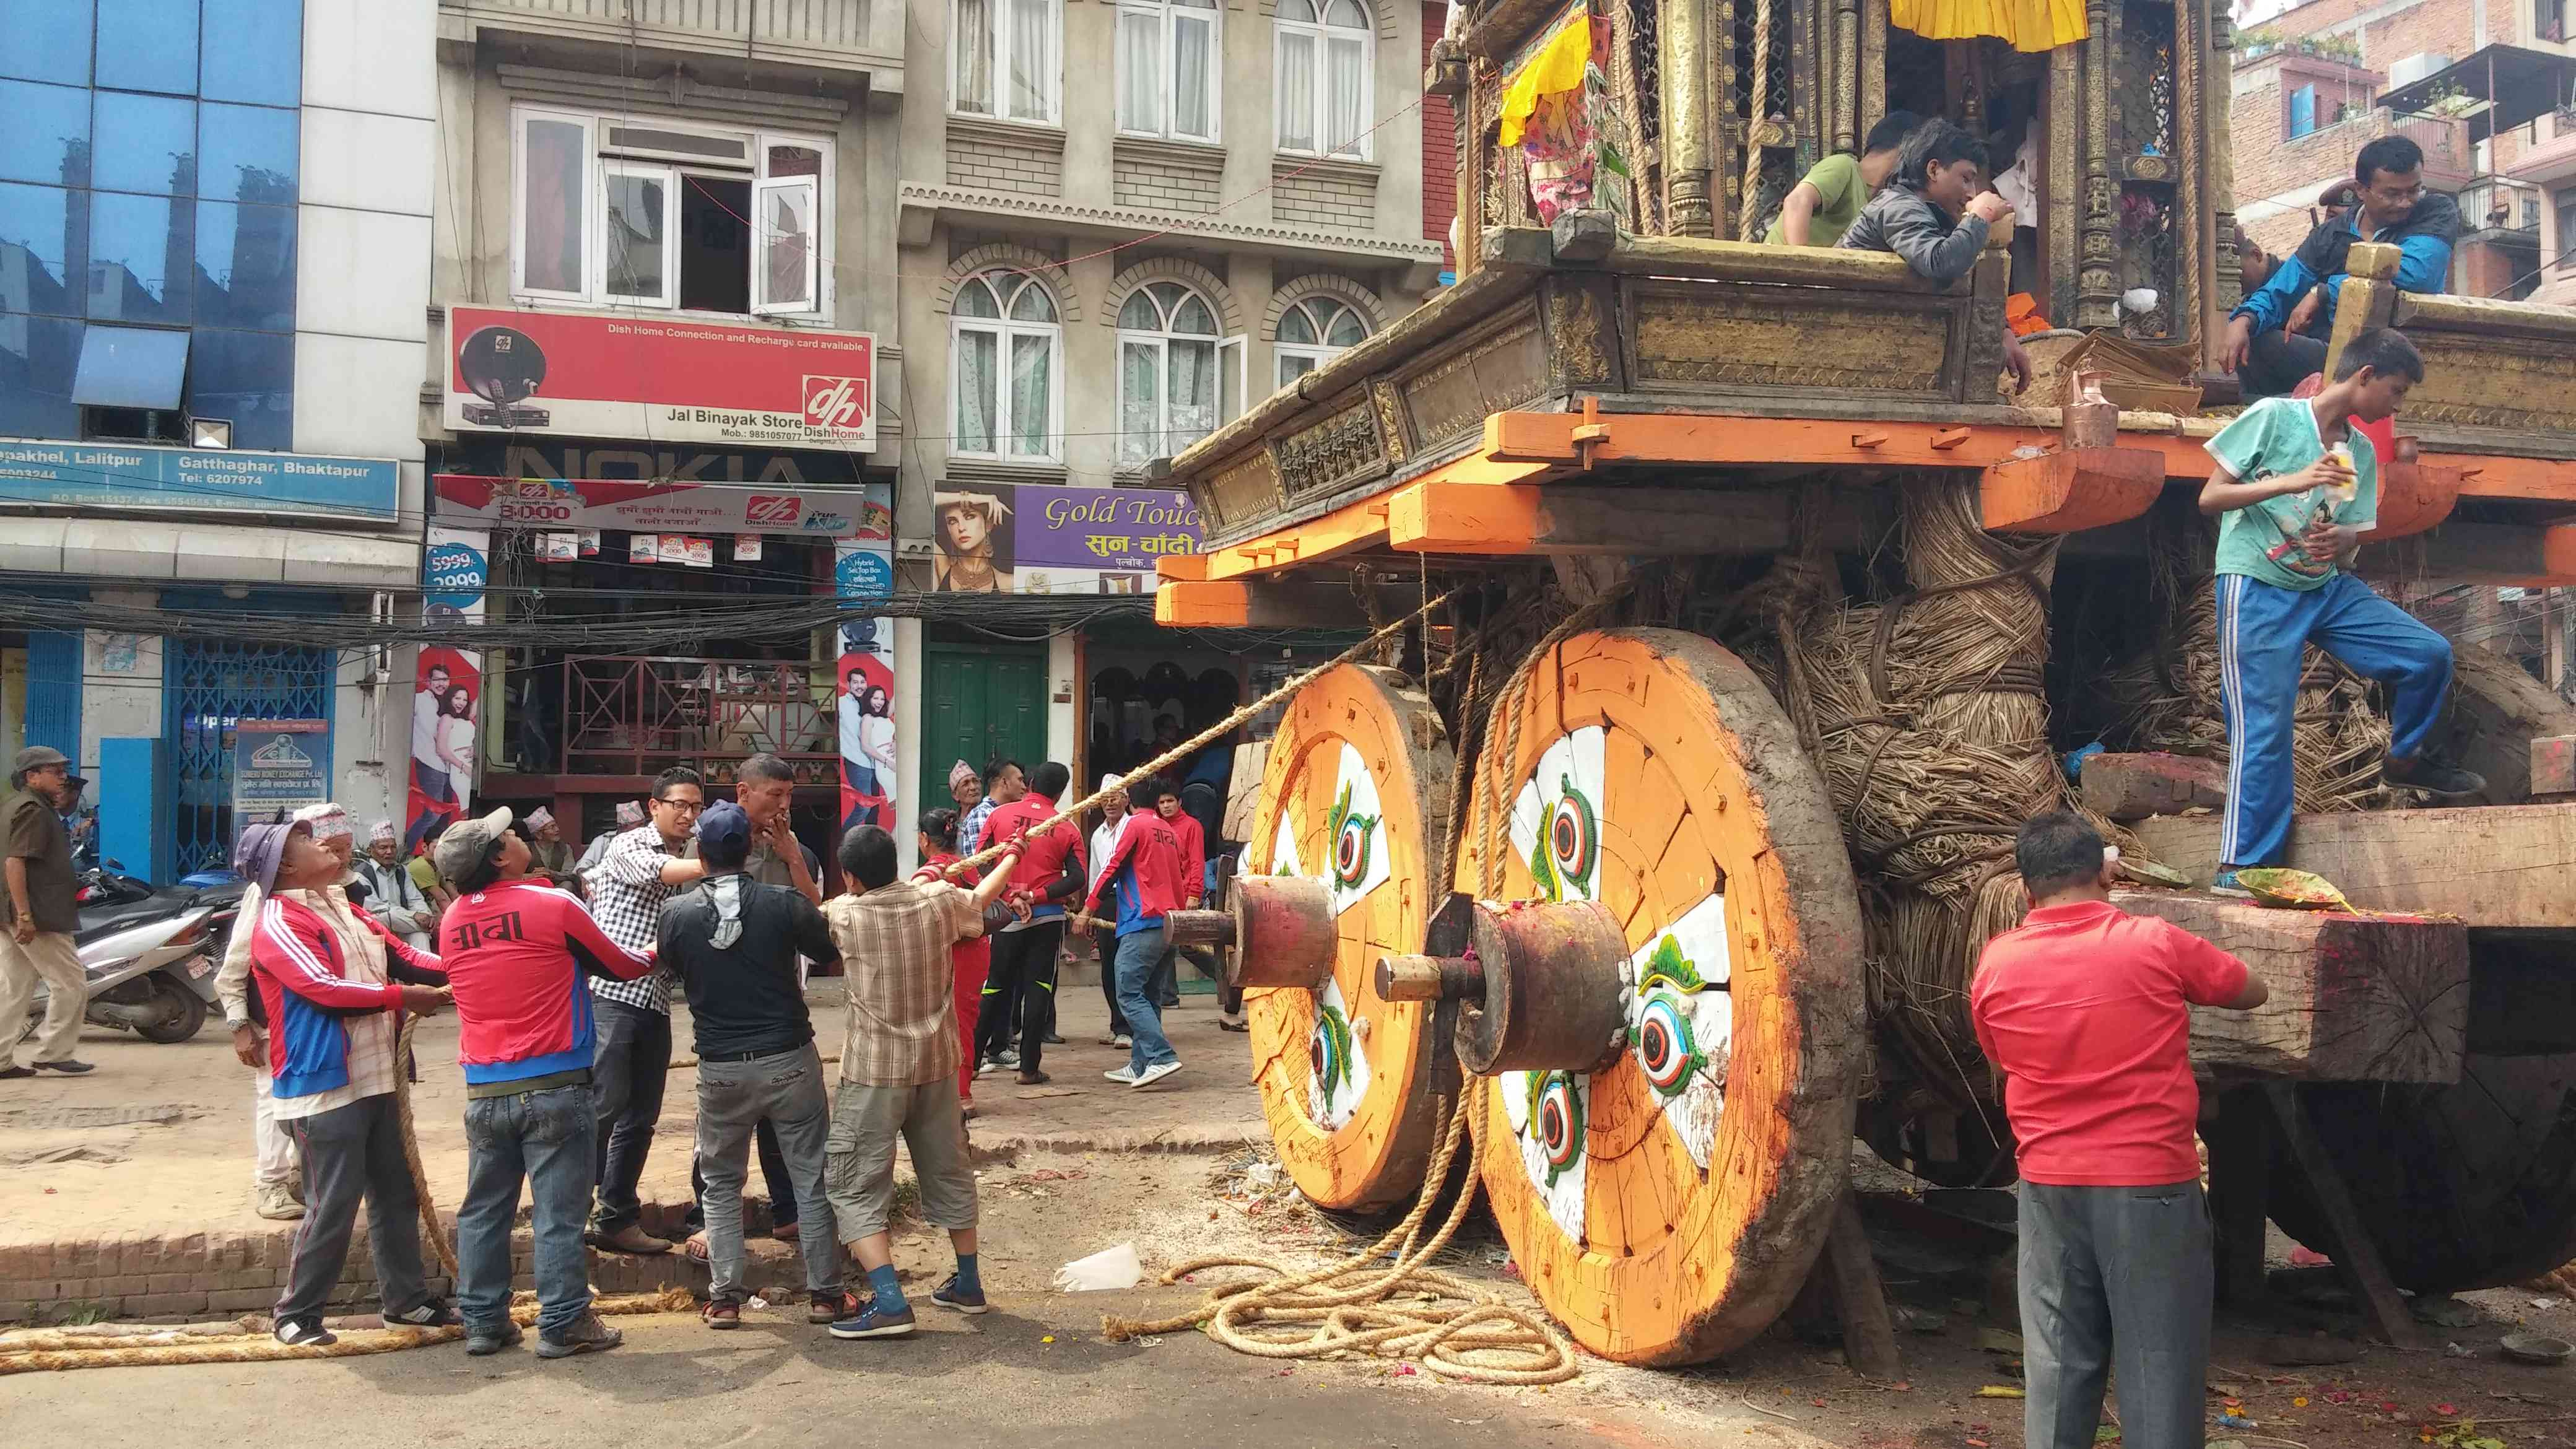 men pulling a rope attached to a large chariot with orange wooden wheels